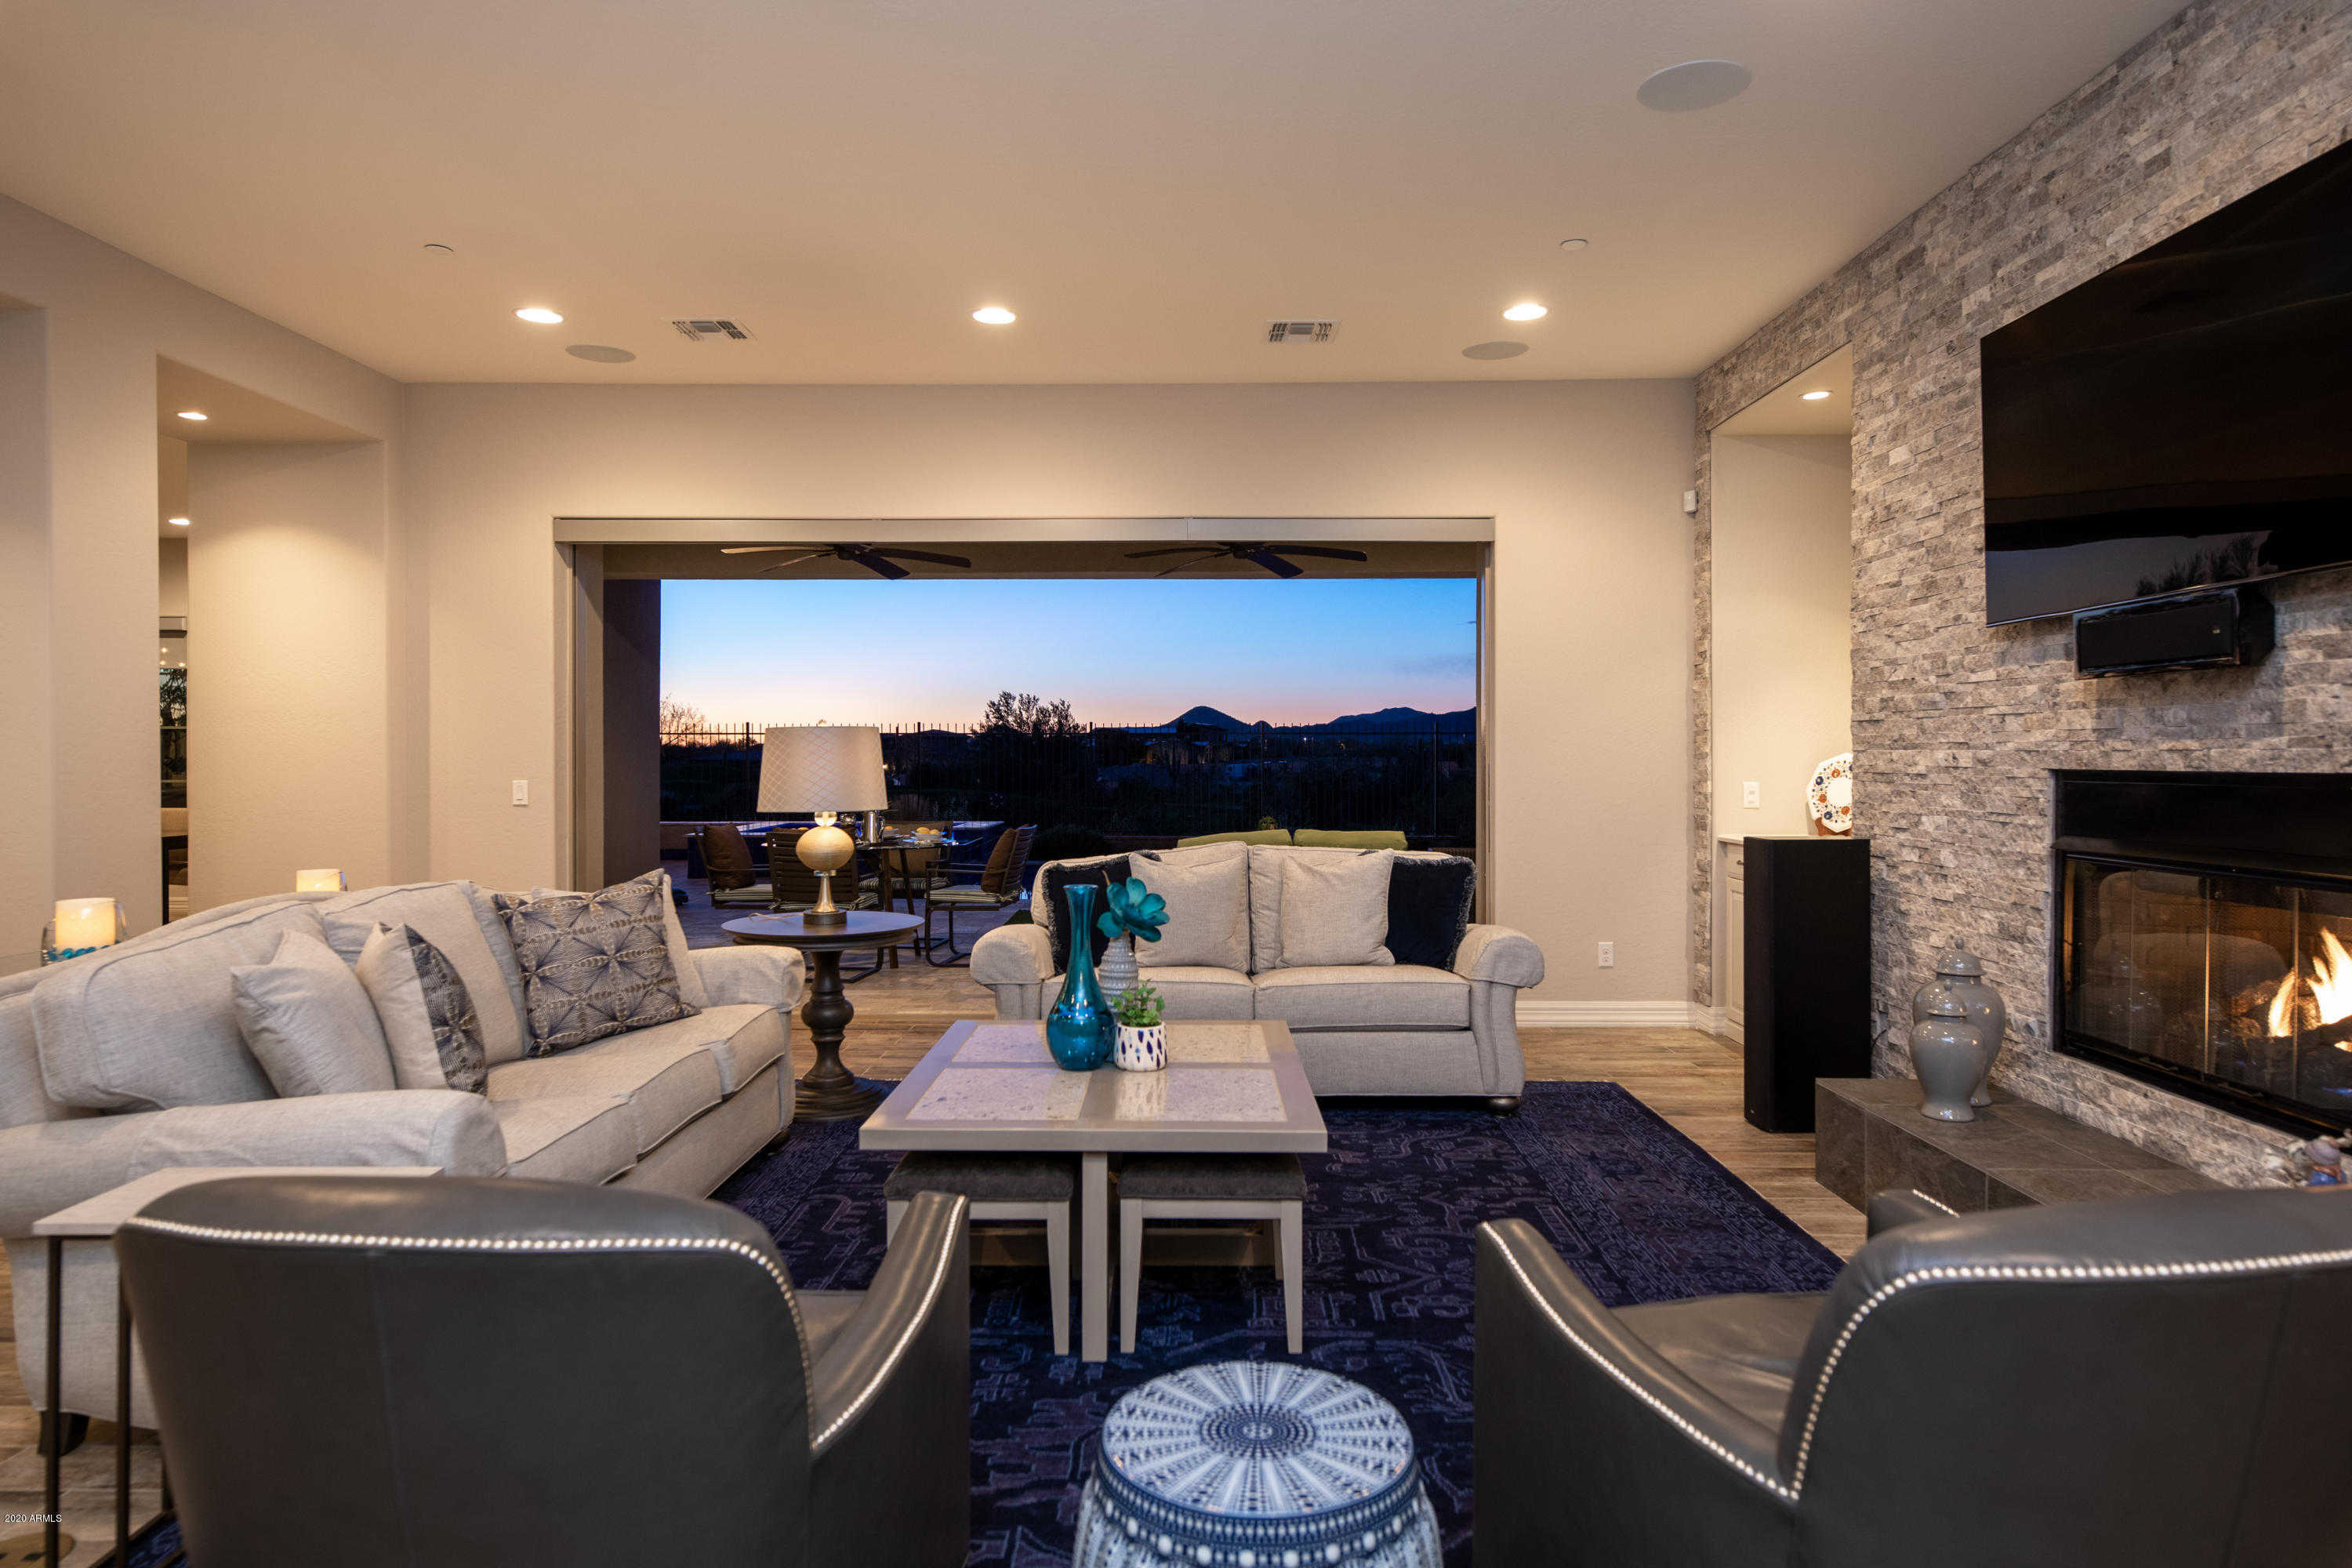 $1,155,000 - 4Br/4Ba - Home for Sale in Blackstone At Vistancia Parcels B6 And B9, Peoria